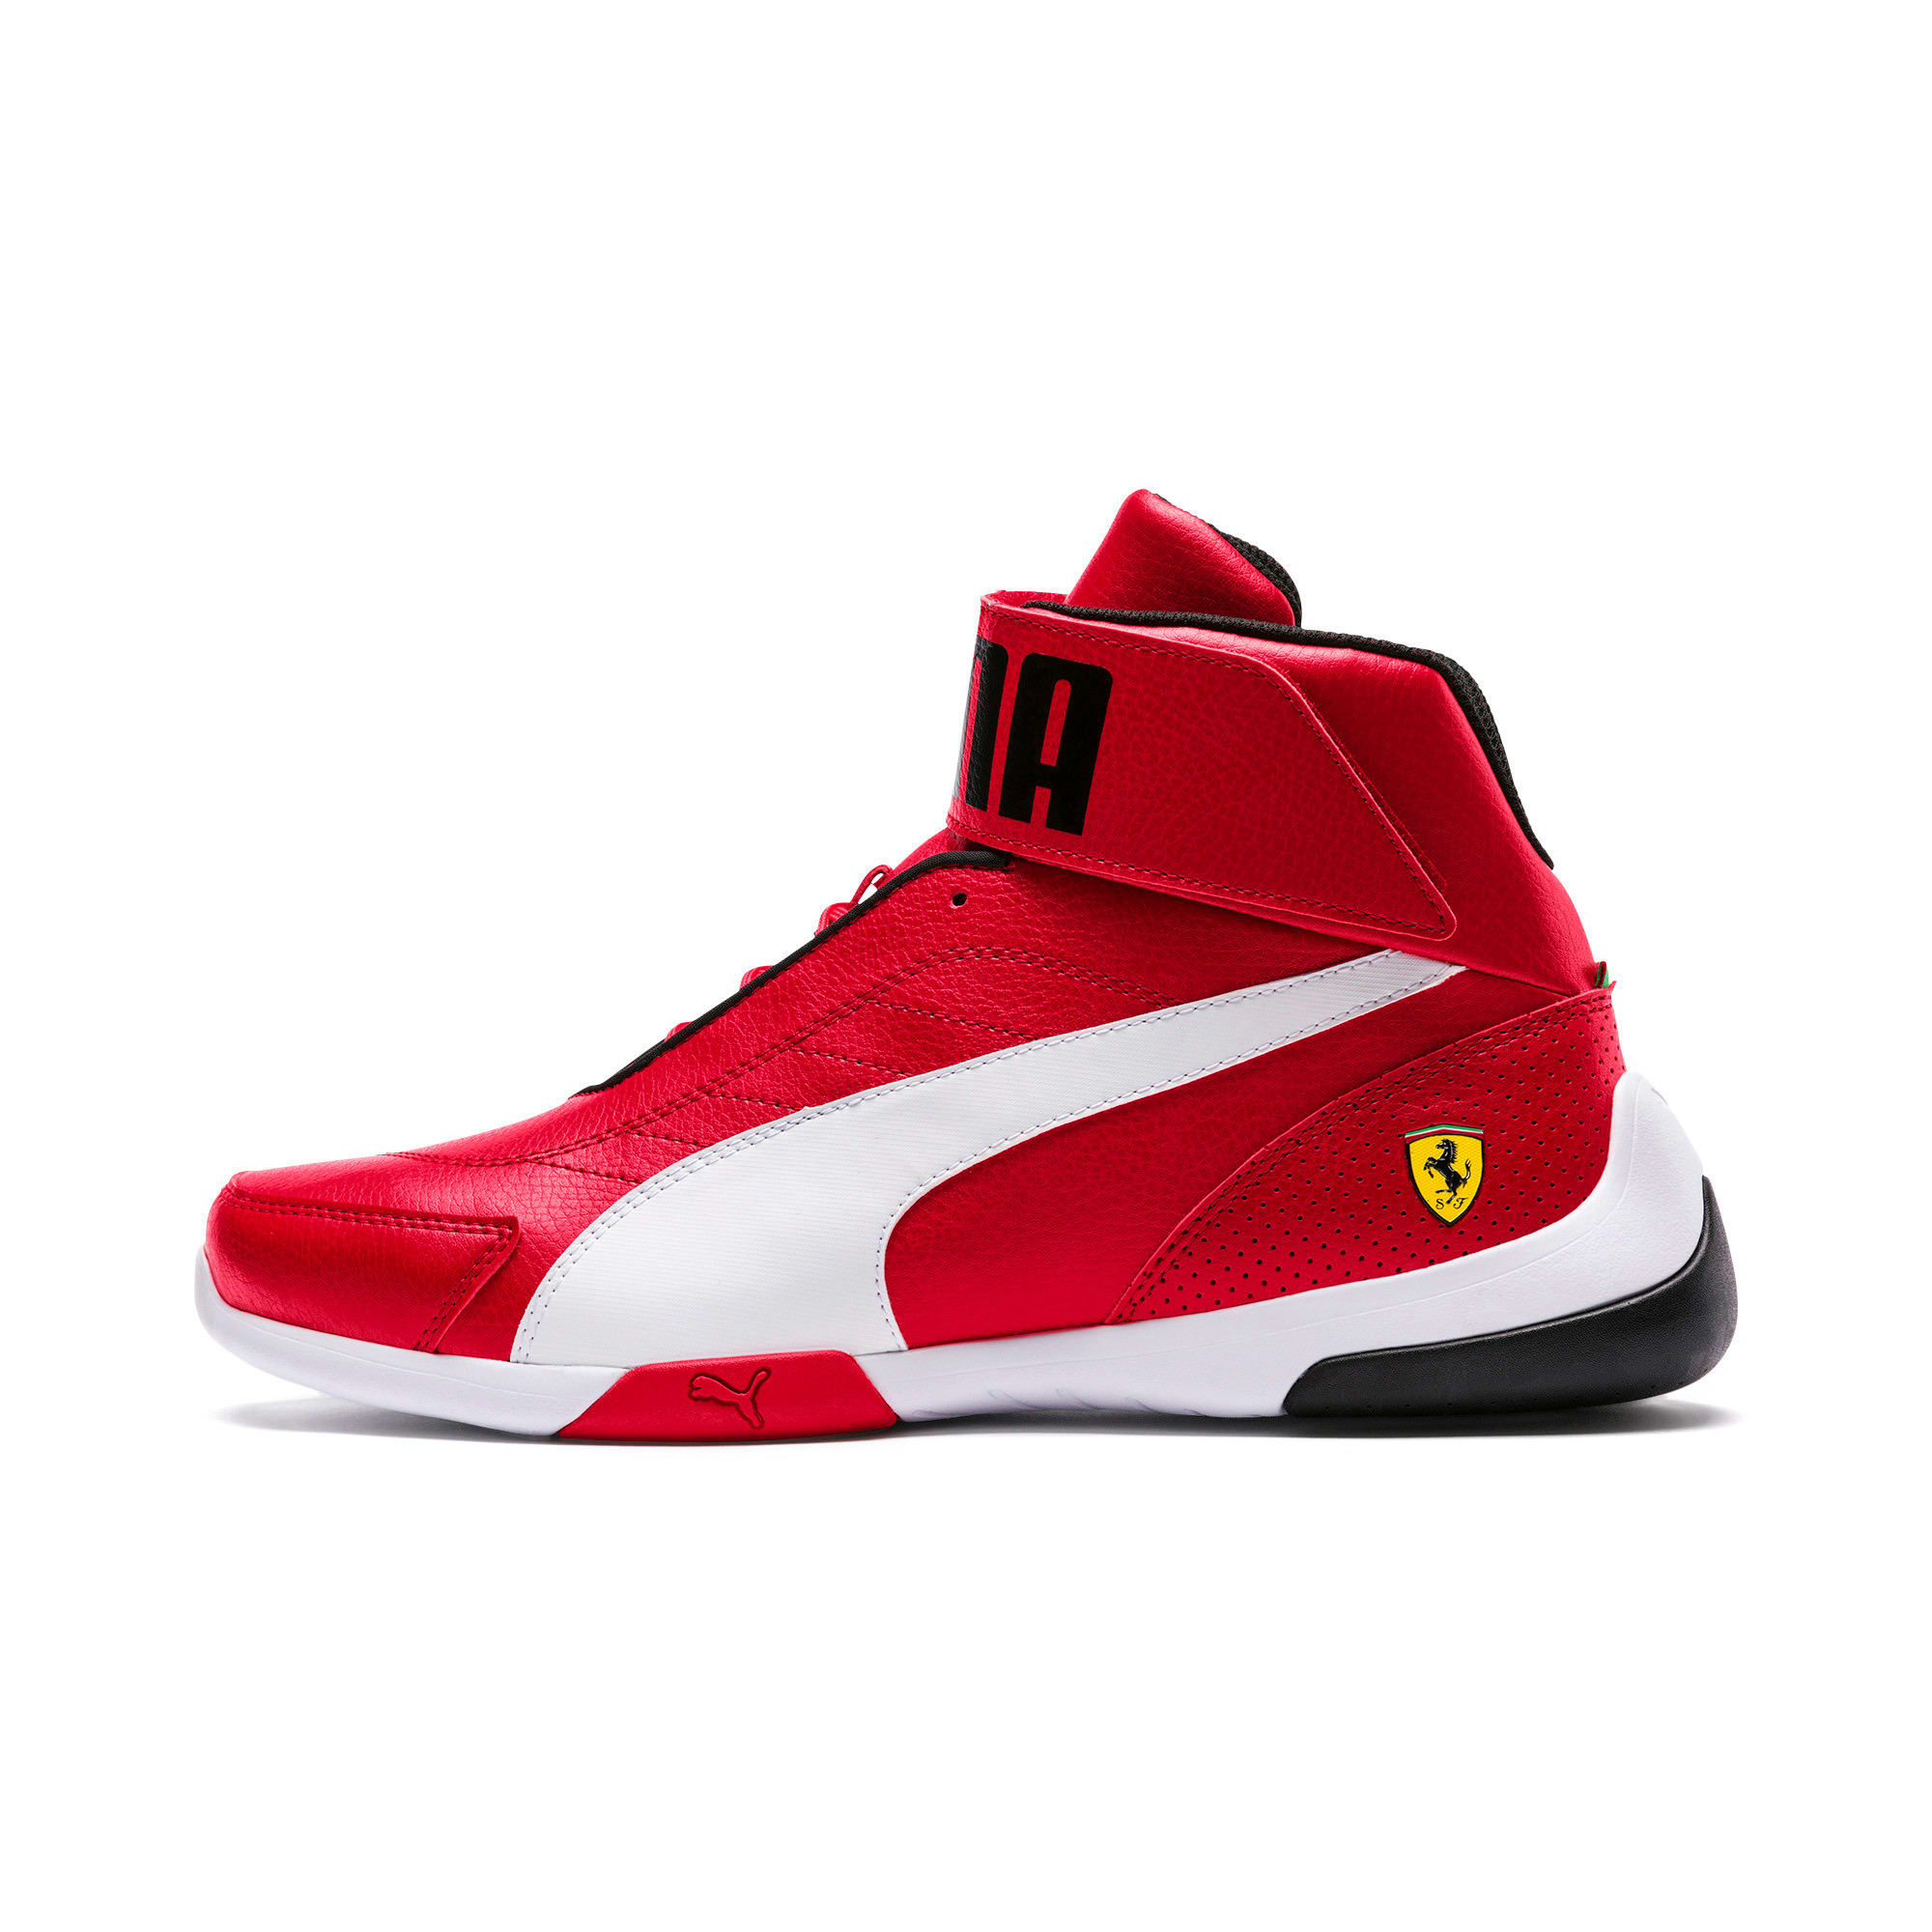 Thumbnail 1 of Scuderia Ferrari Kart Cat Mid III Hi Top Shoes, Rosso Corsa-Puma White, medium